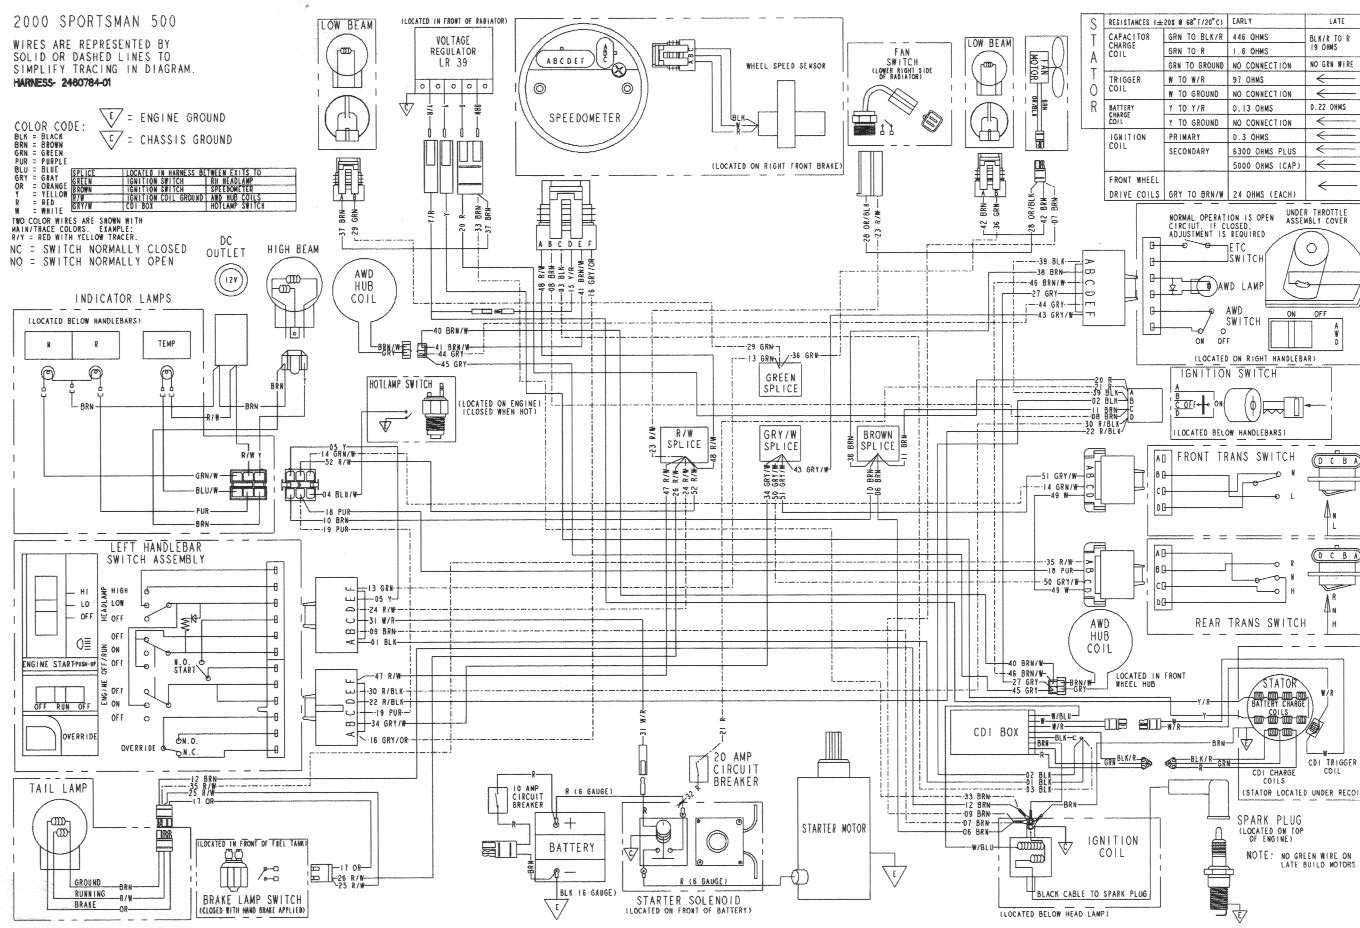 OR_7612] Further Can Am Outlander 800 Wiring Diagram Besides Can Am  Outlander Wiring Diagram | Truckstar Tarp Motor 5543095 Wiring Diagram |  | Sequ Lacu Gue45 Ologi Emba Mohammedshrine Librar Wiring 101